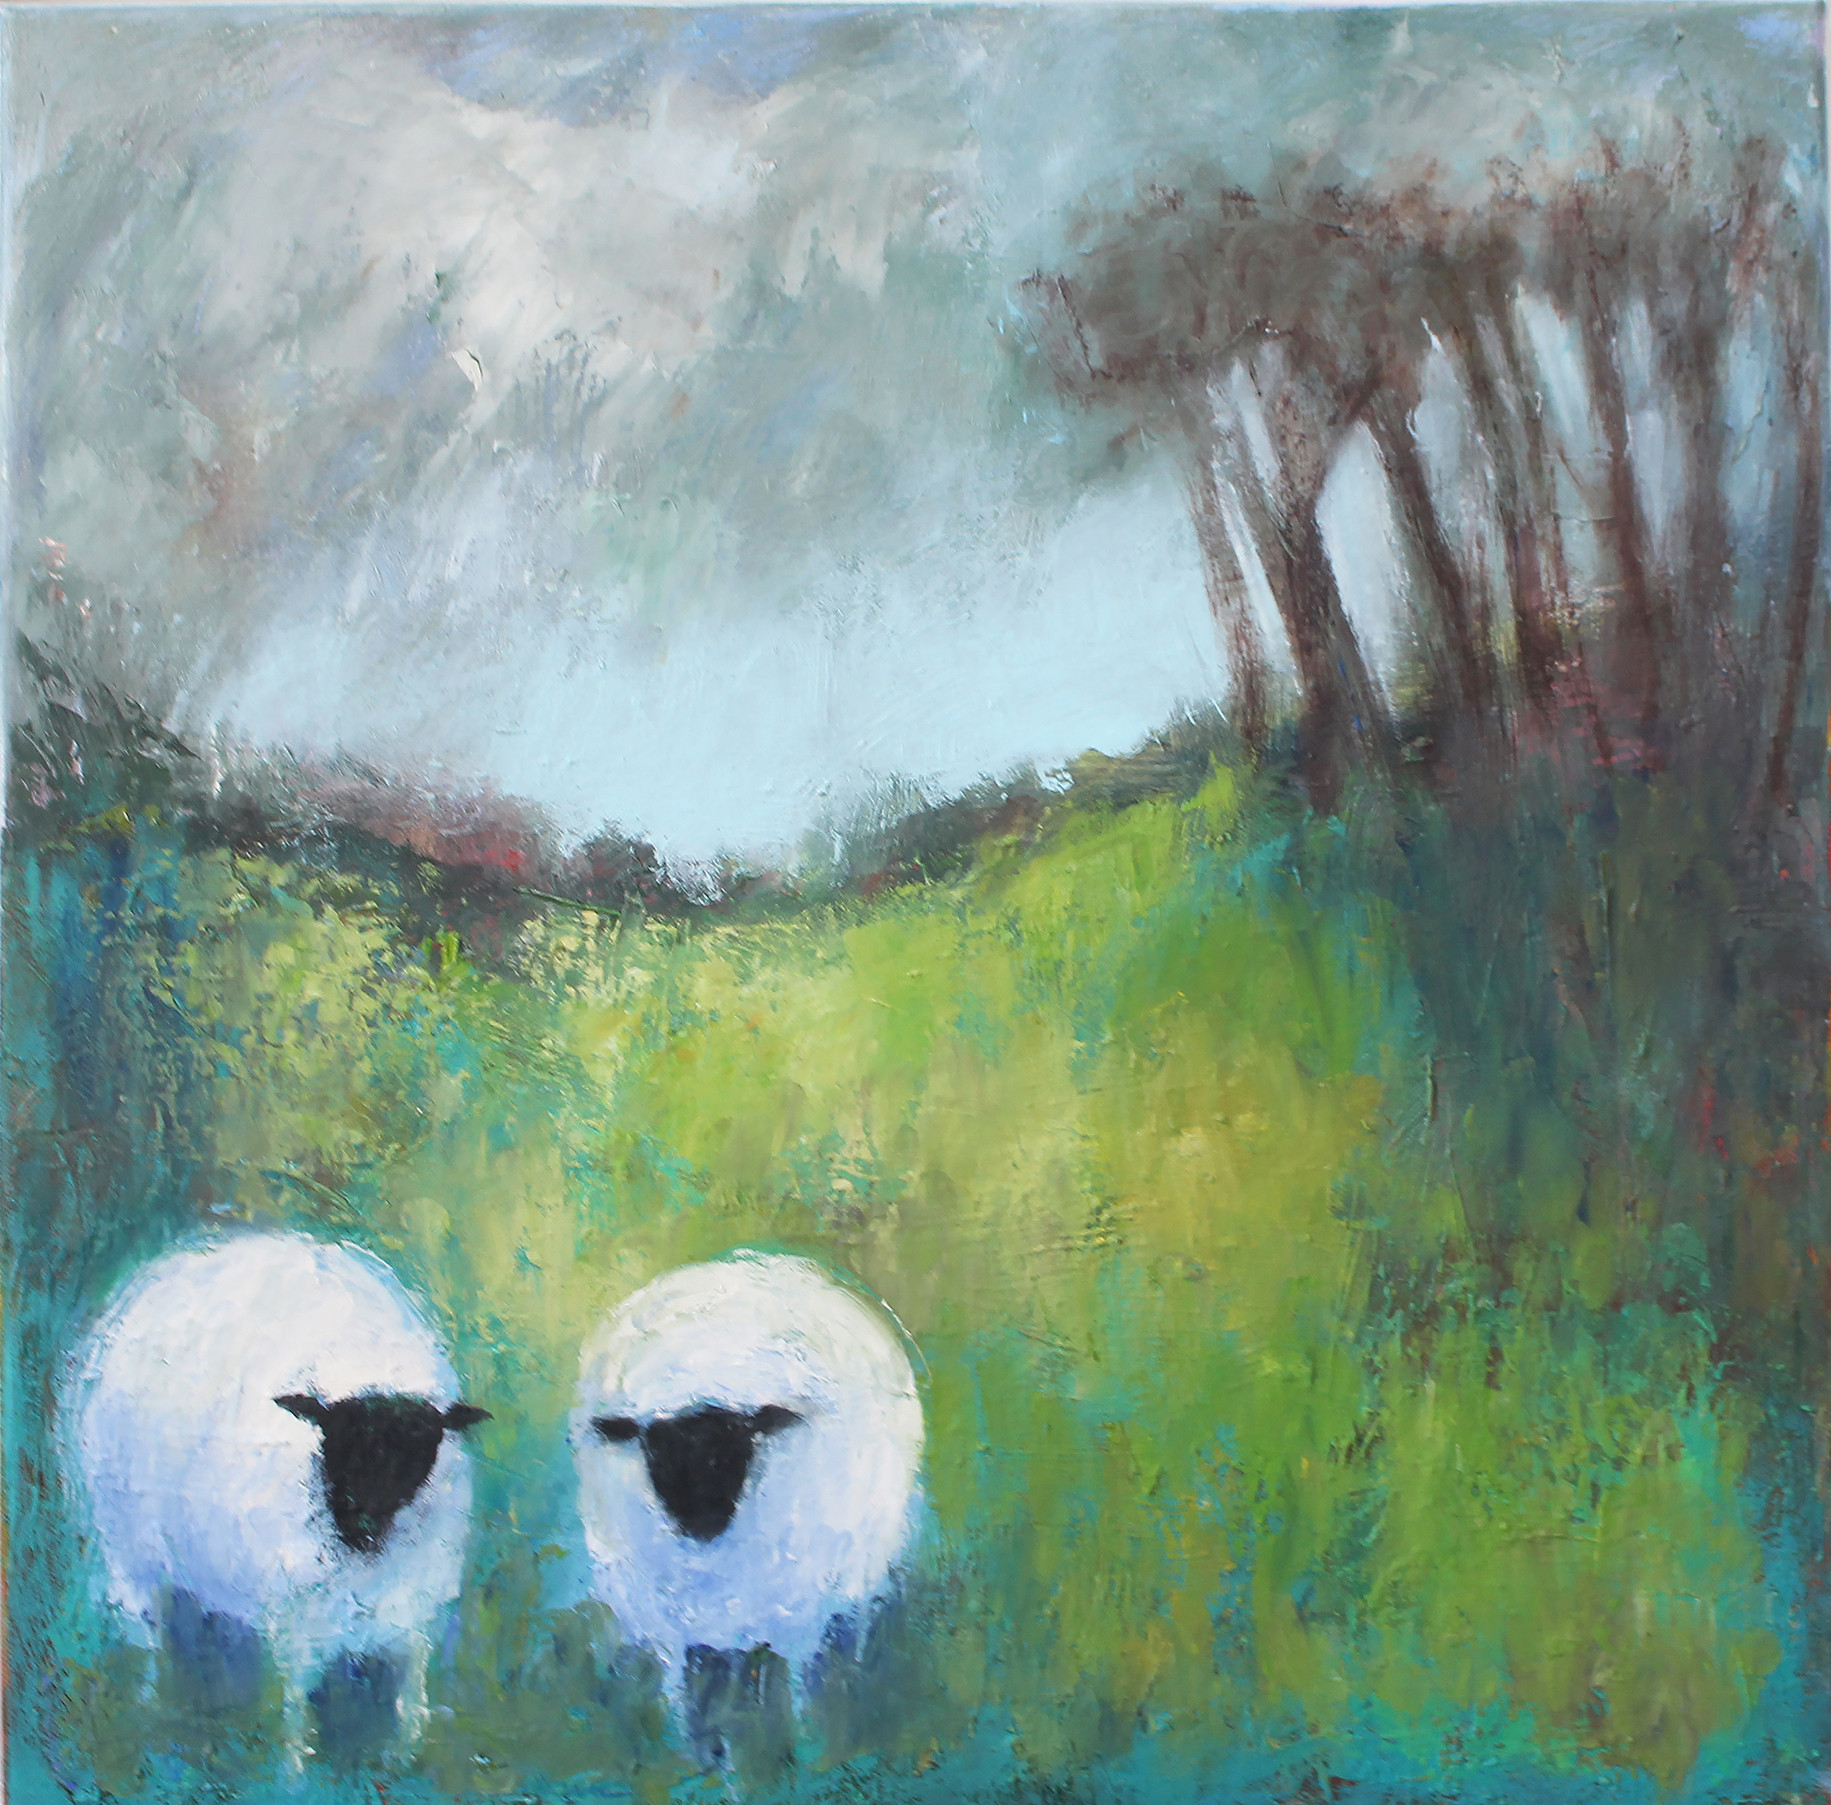 Sheep in field - oil on canvas 40 x 40 cm framed £195